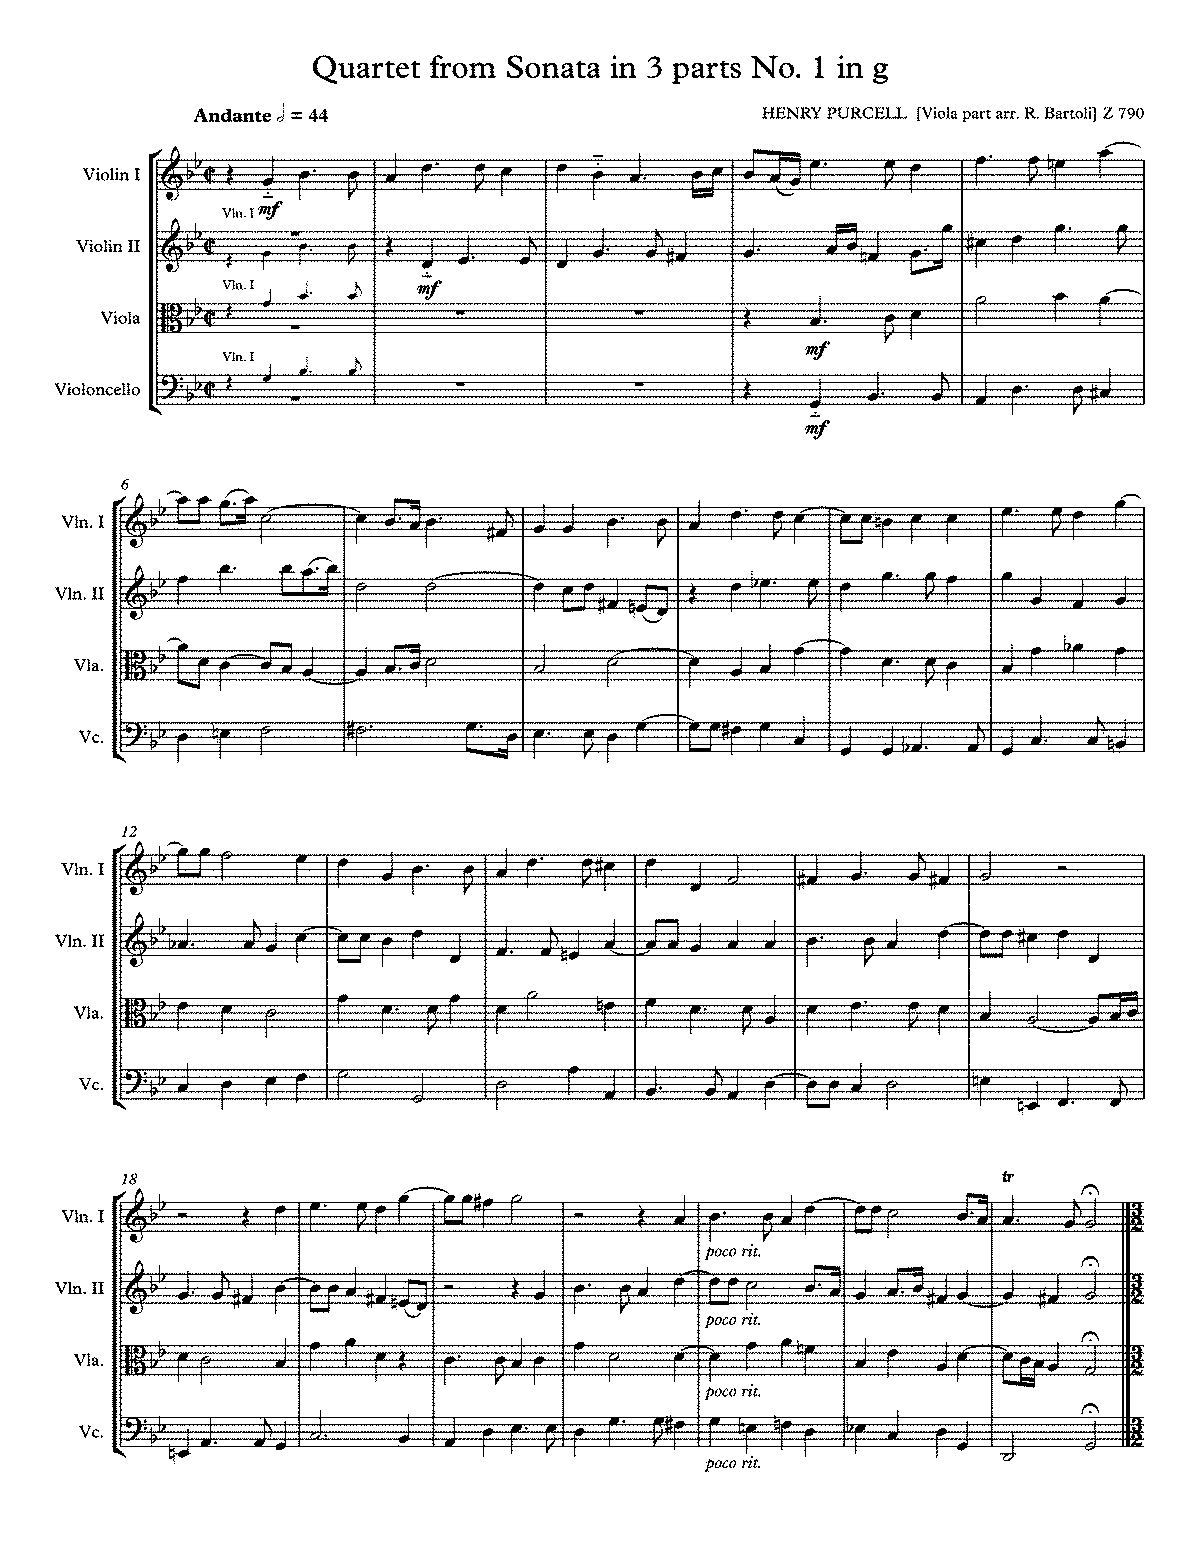 PMLP85673-Purcell Z 790 Sonata no. 1 in g s4 russ va only D - Full Score.pdf